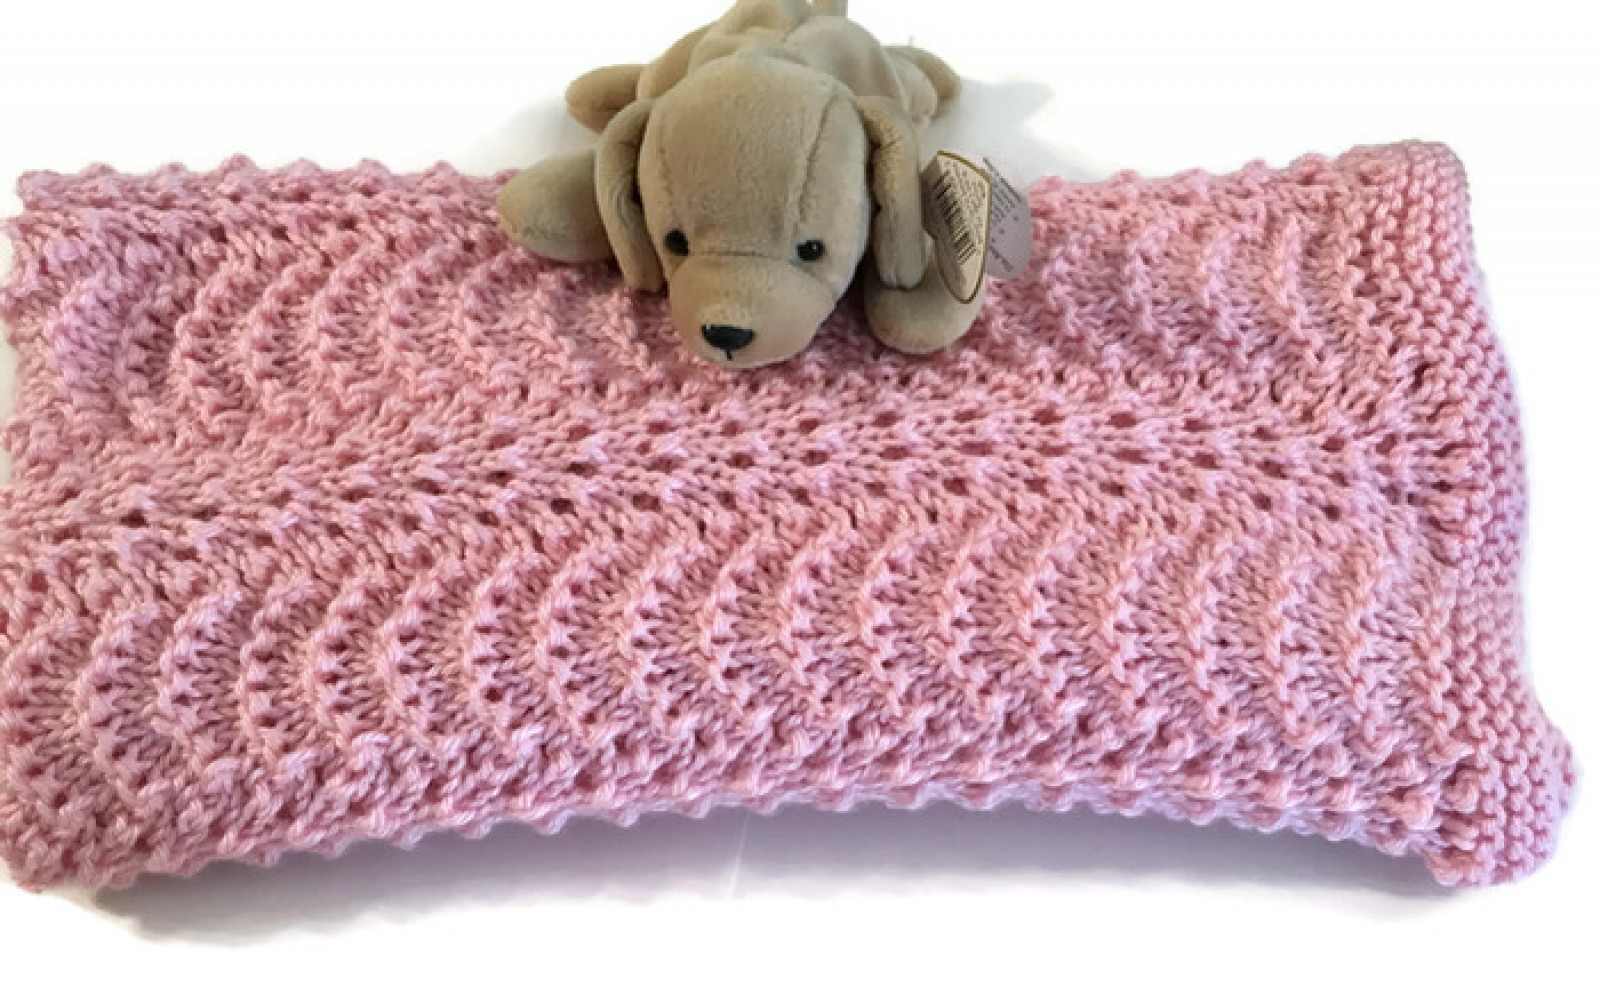 Best Of Handknit Baby Blanket New Girl Receiving Lace Caron Simply Caron Baby Yarn Of Superb 49 Ideas Caron Baby Yarn